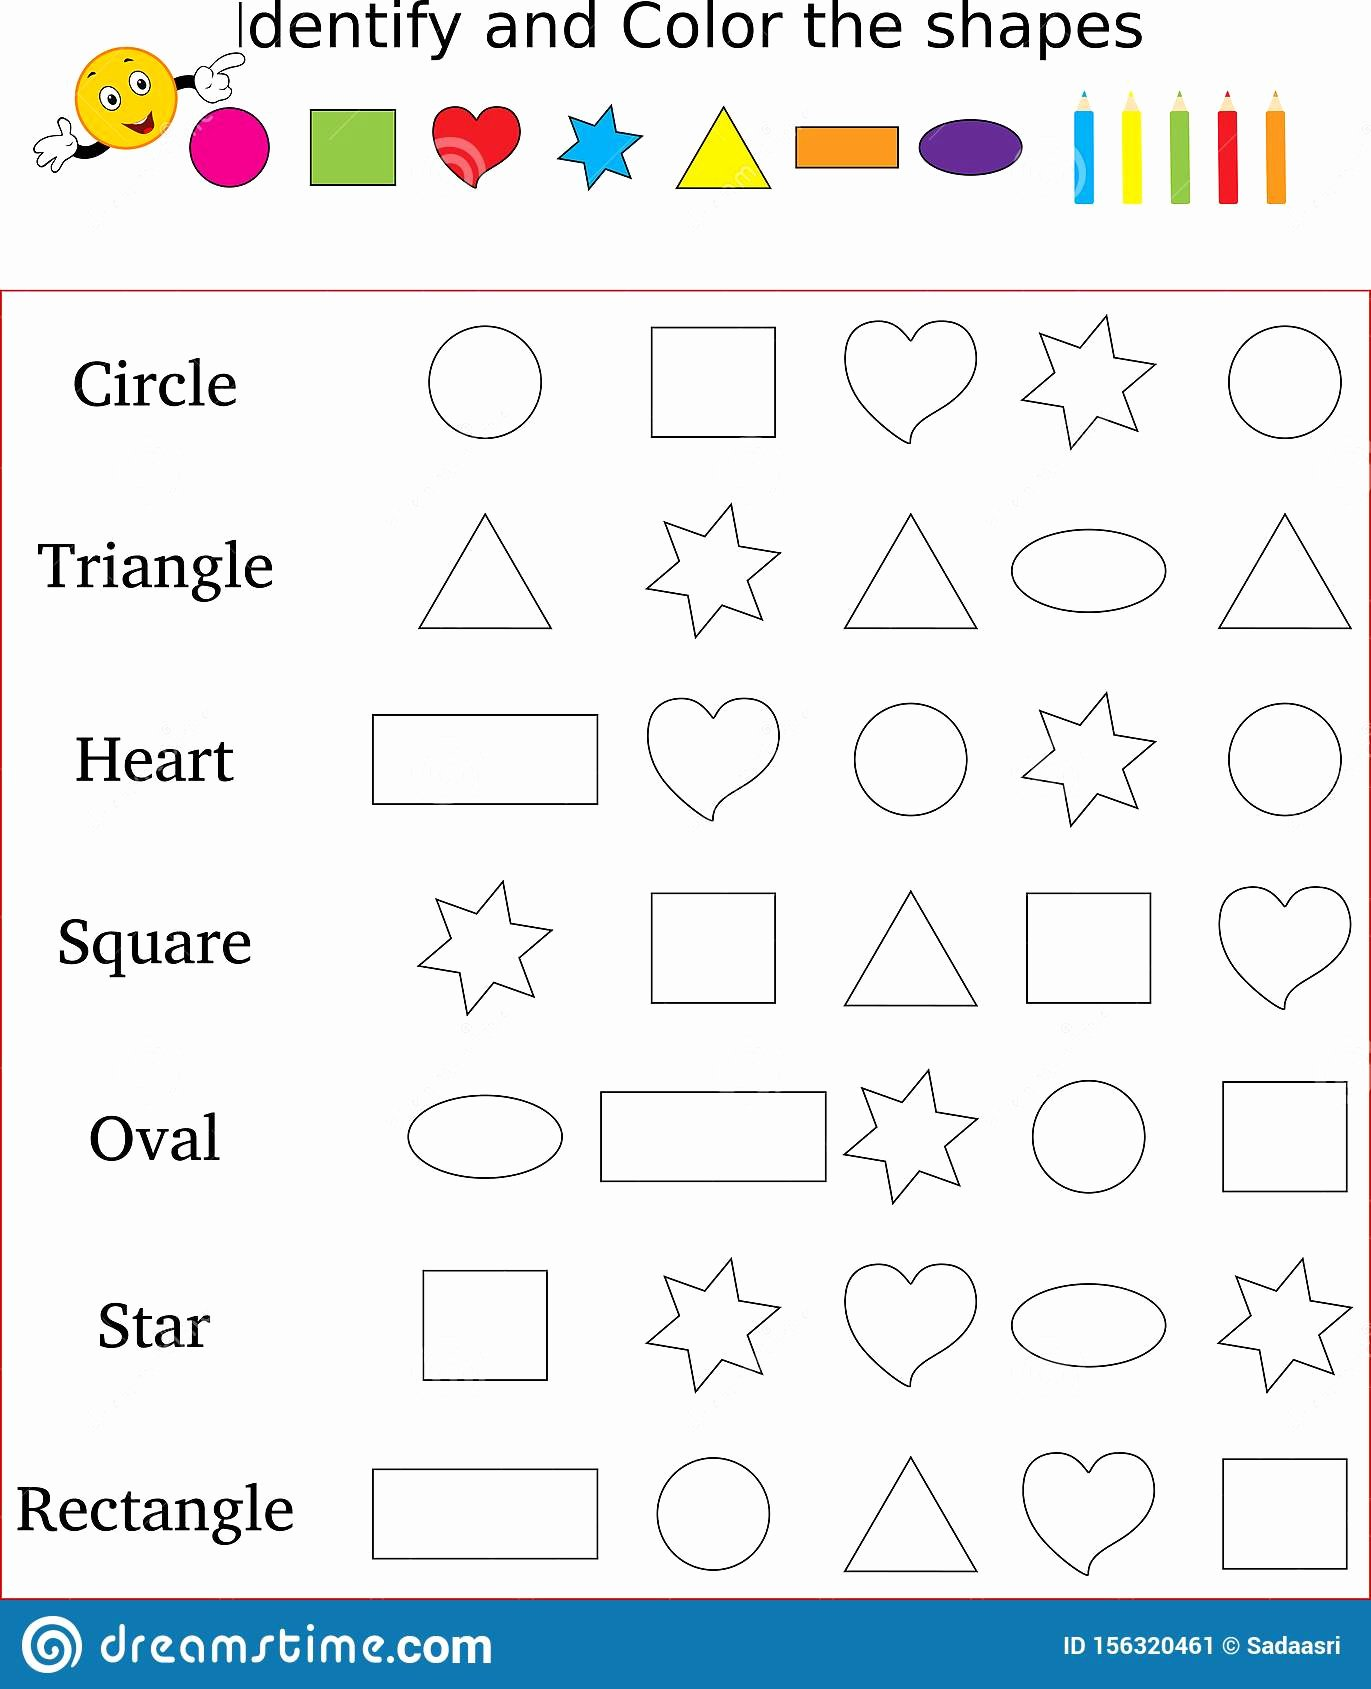 Worksheets for Preschoolers About Shapes Lovely Identify and Color the Correct Shape Worksheet Stock Image